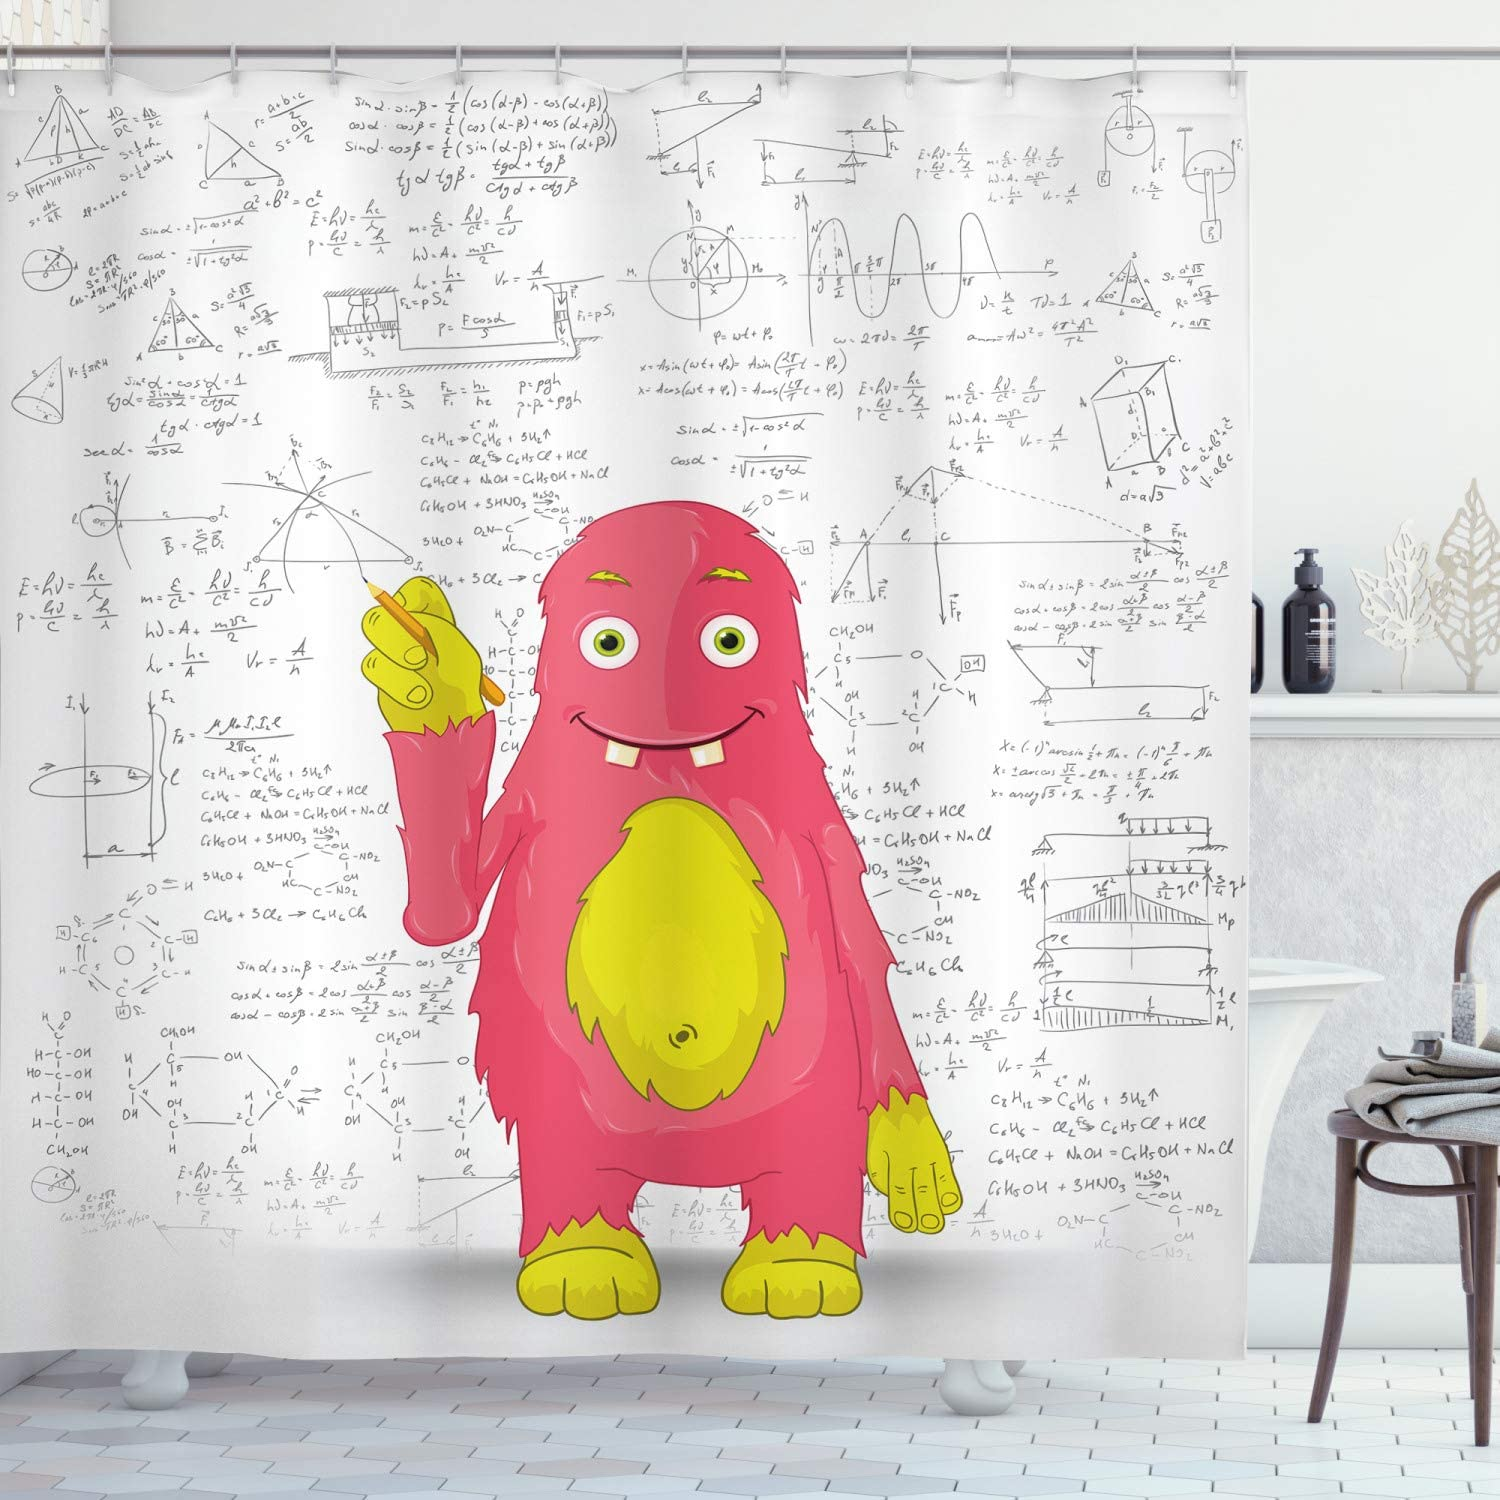 Ambesonne School Shower Curtain, Funny Smart Monster Doing Math on Wall Science Nerds Comic Illustration, Cloth Fabric Bathroom Decor Set with Hooks, 70